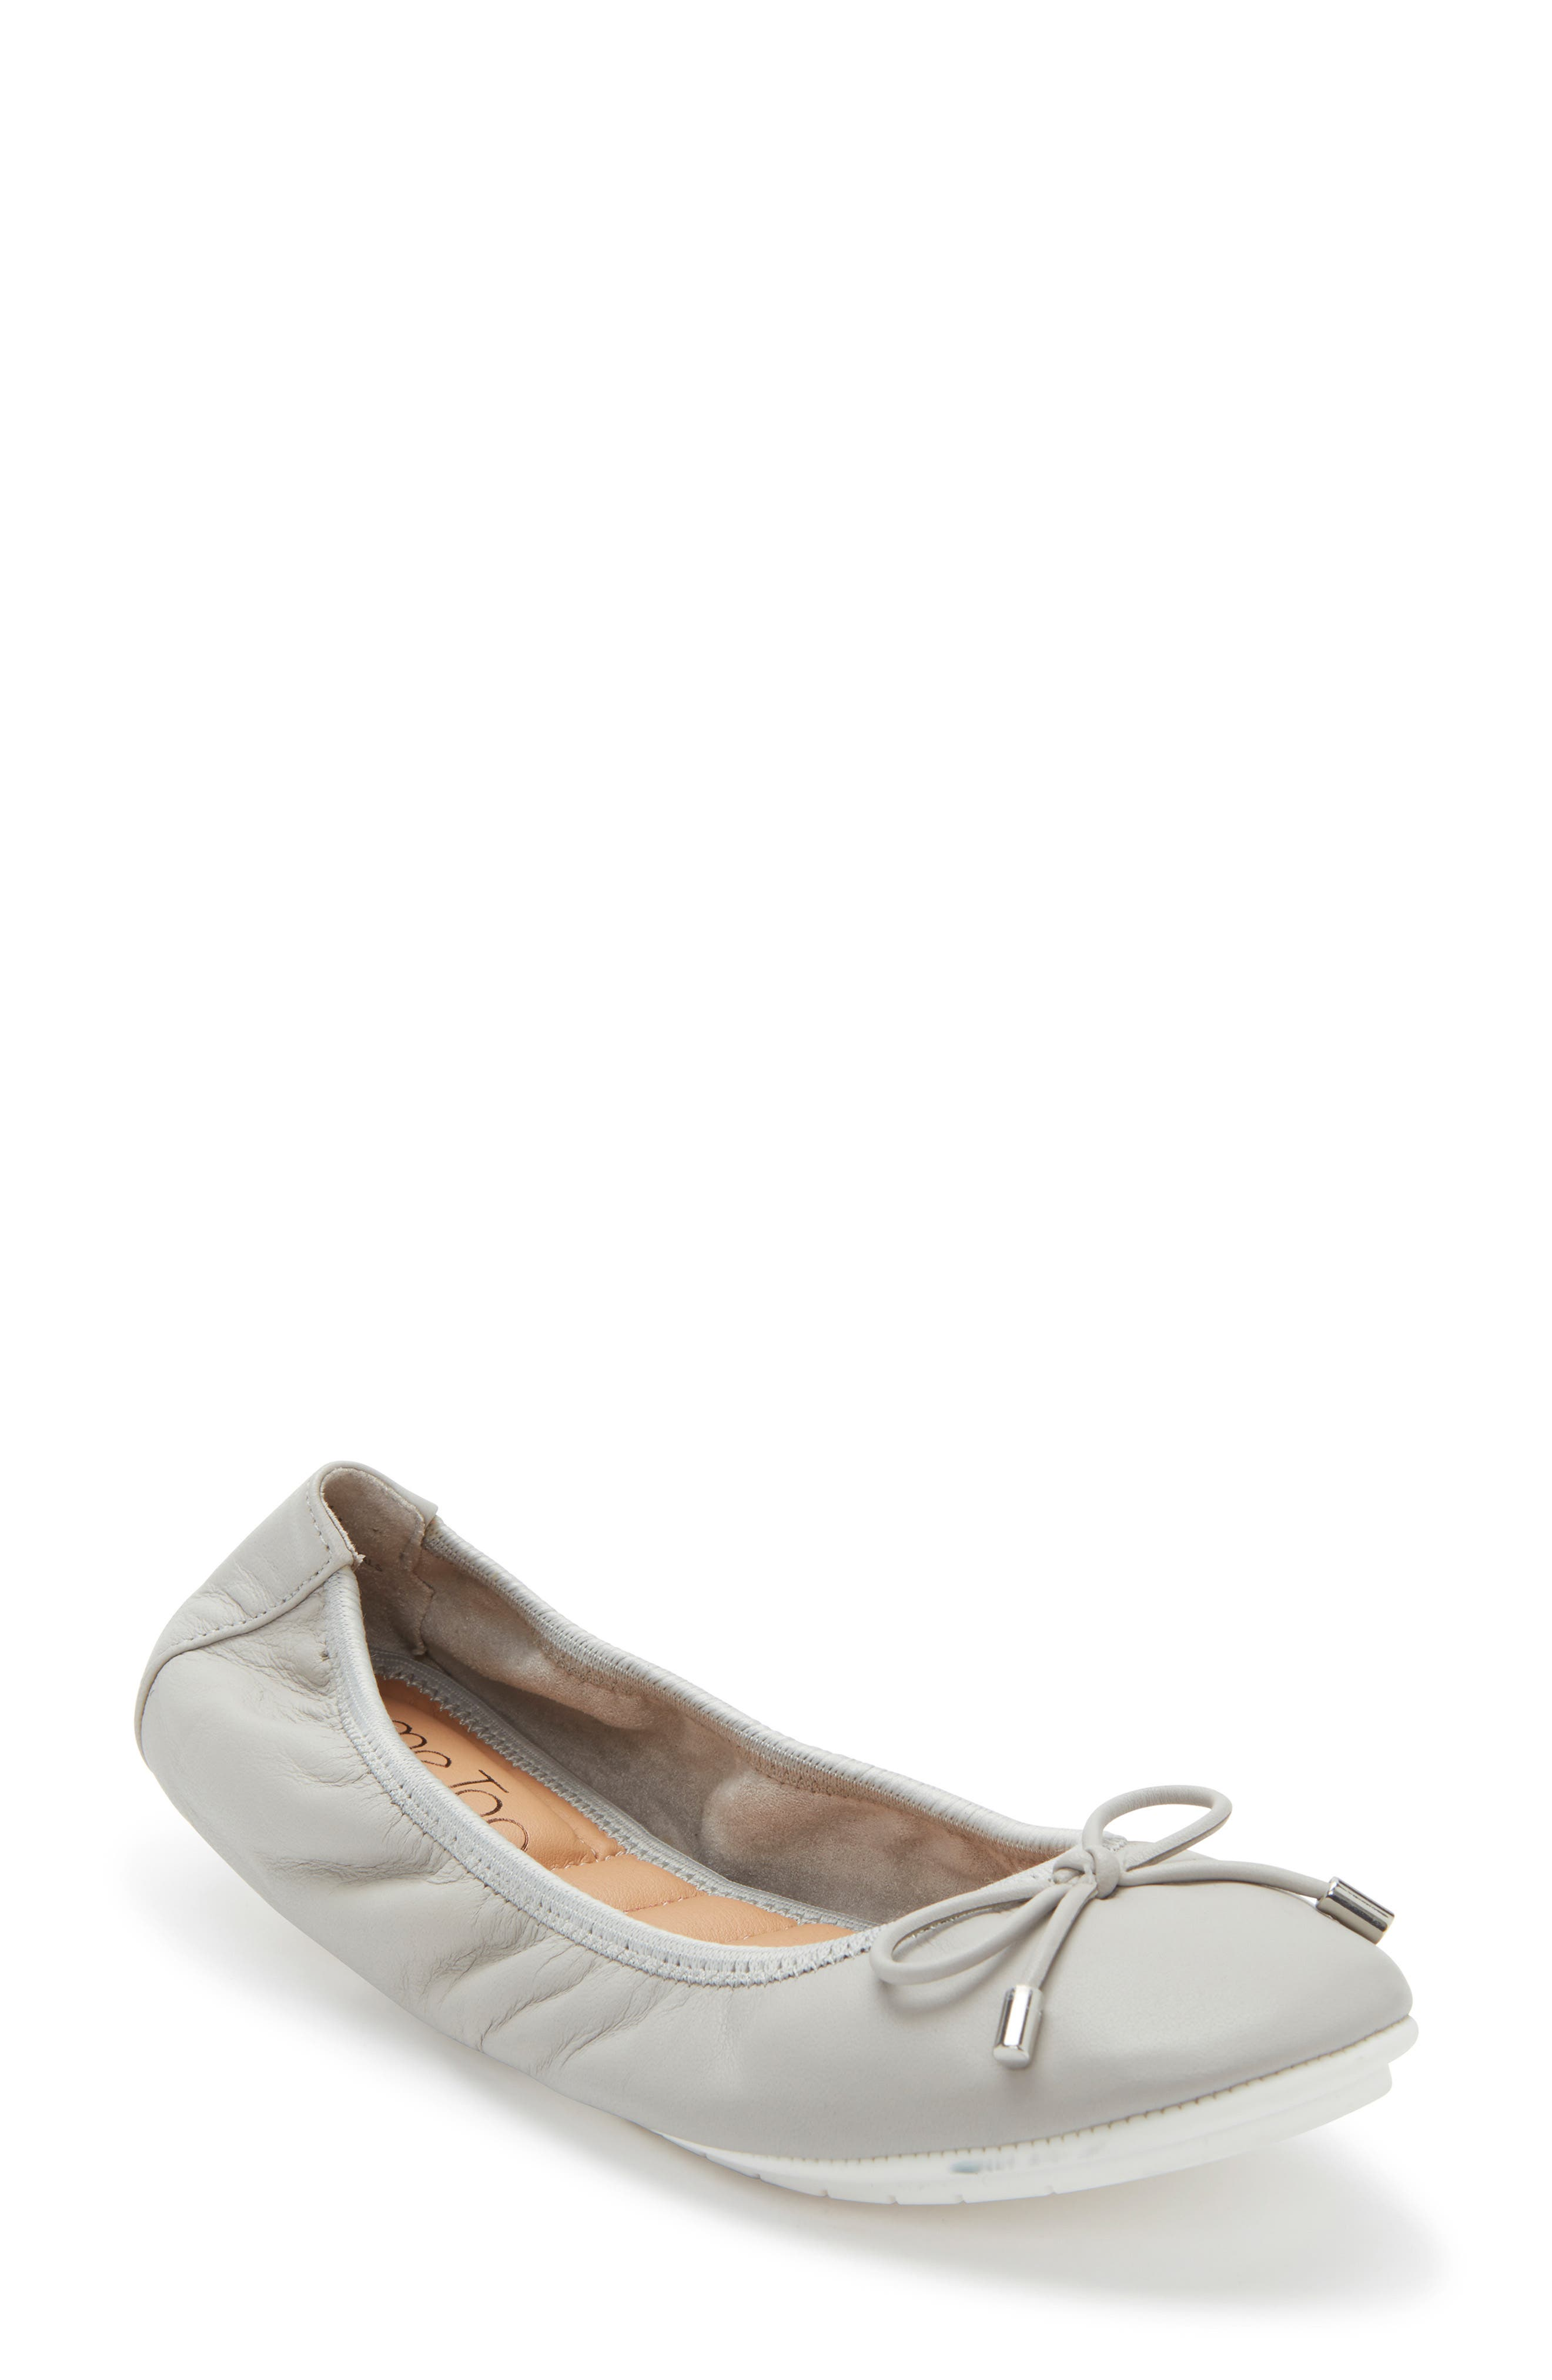 ME TOO 'Halle 2.0' Ballet Flat, Main, color, LIGHT GREY LEATHER